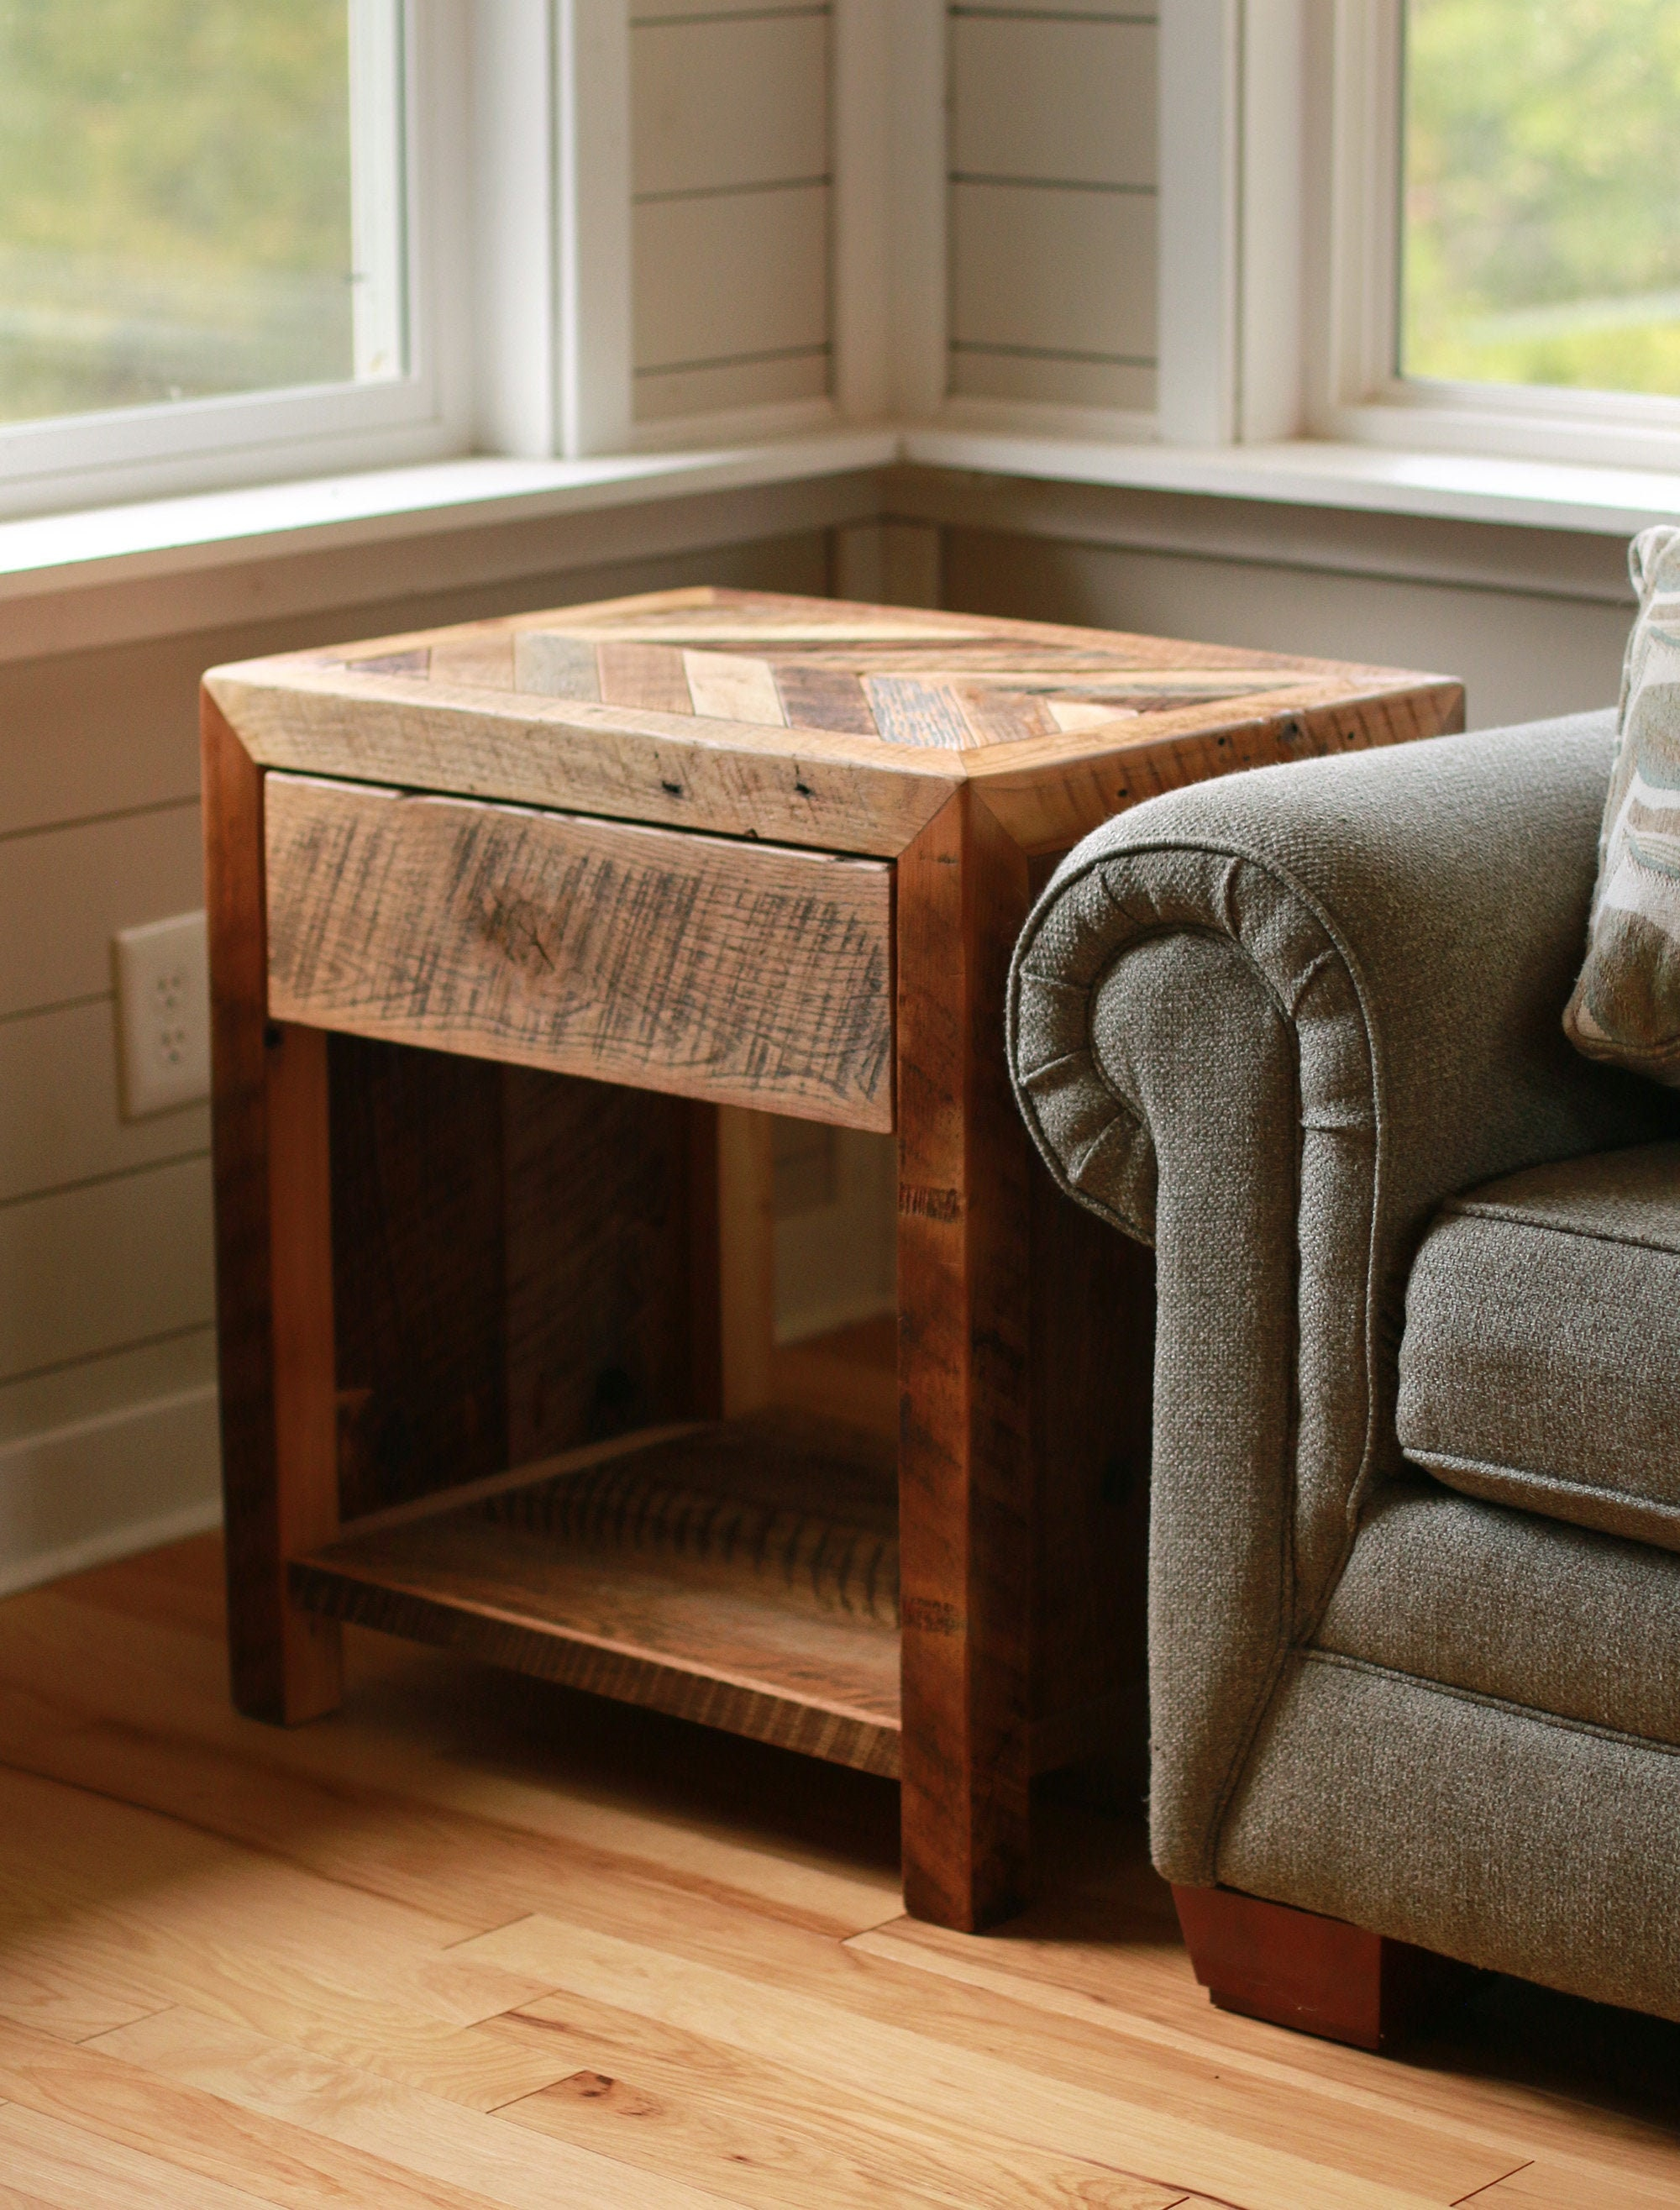 Reclaimed Wood End Table Living Room, Side Tables For Living Room